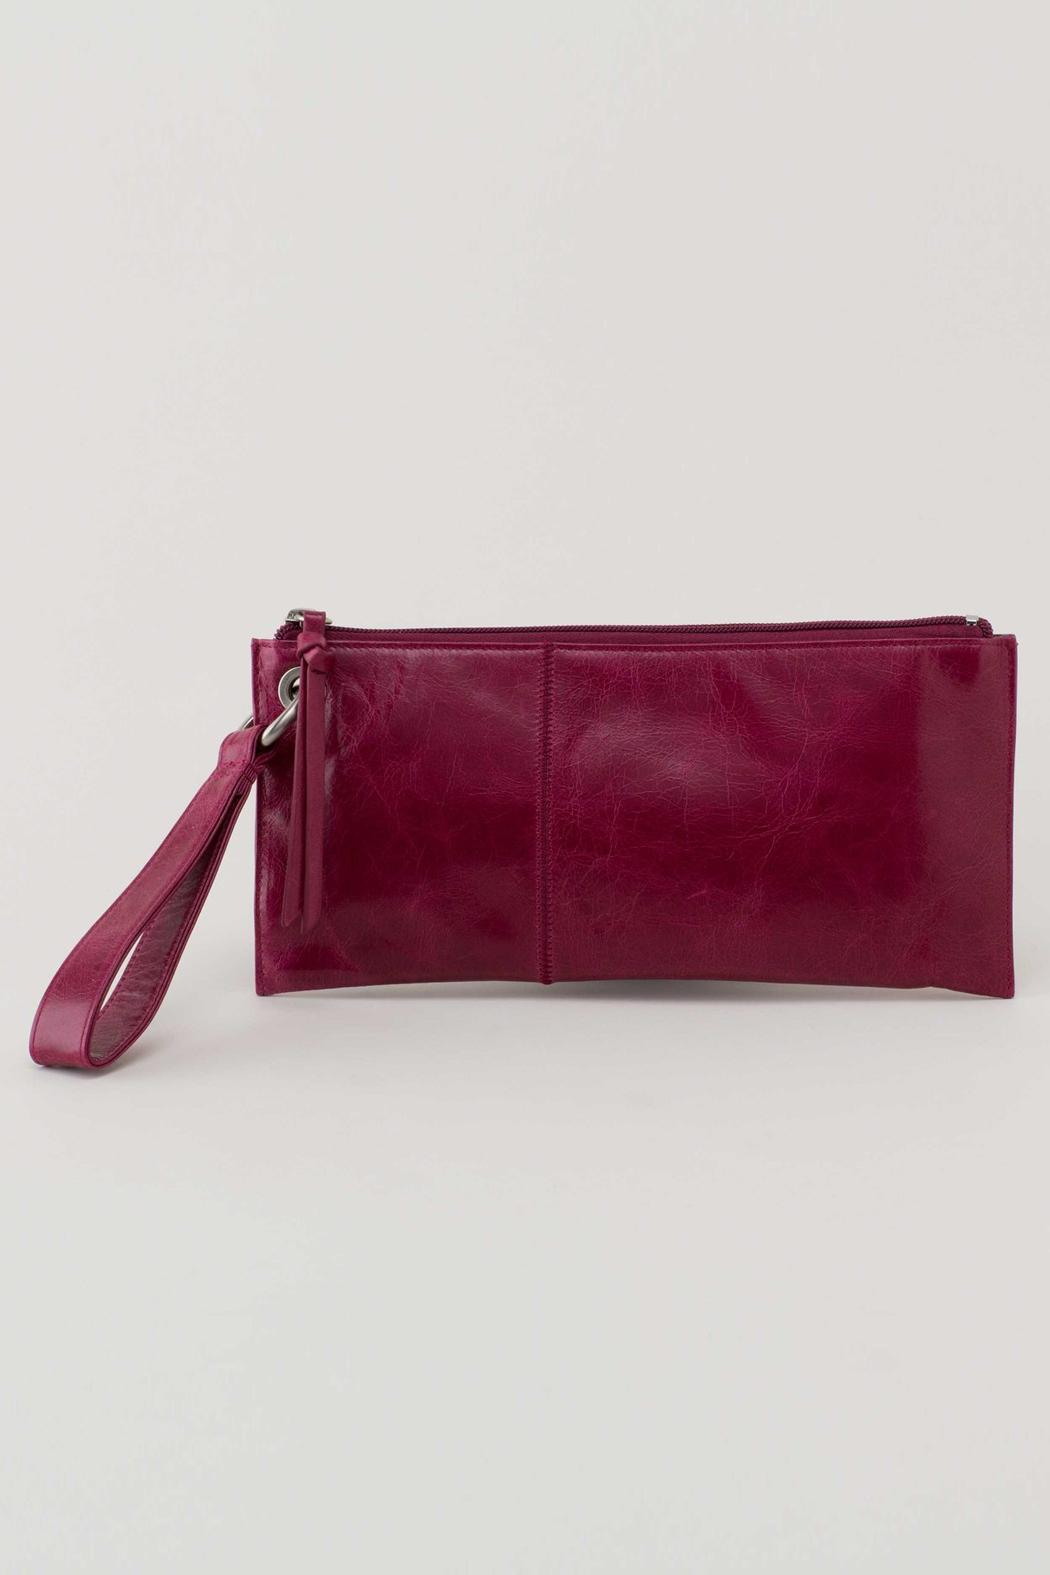 VIDA Statement Clutch - Prehistoric by VIDA